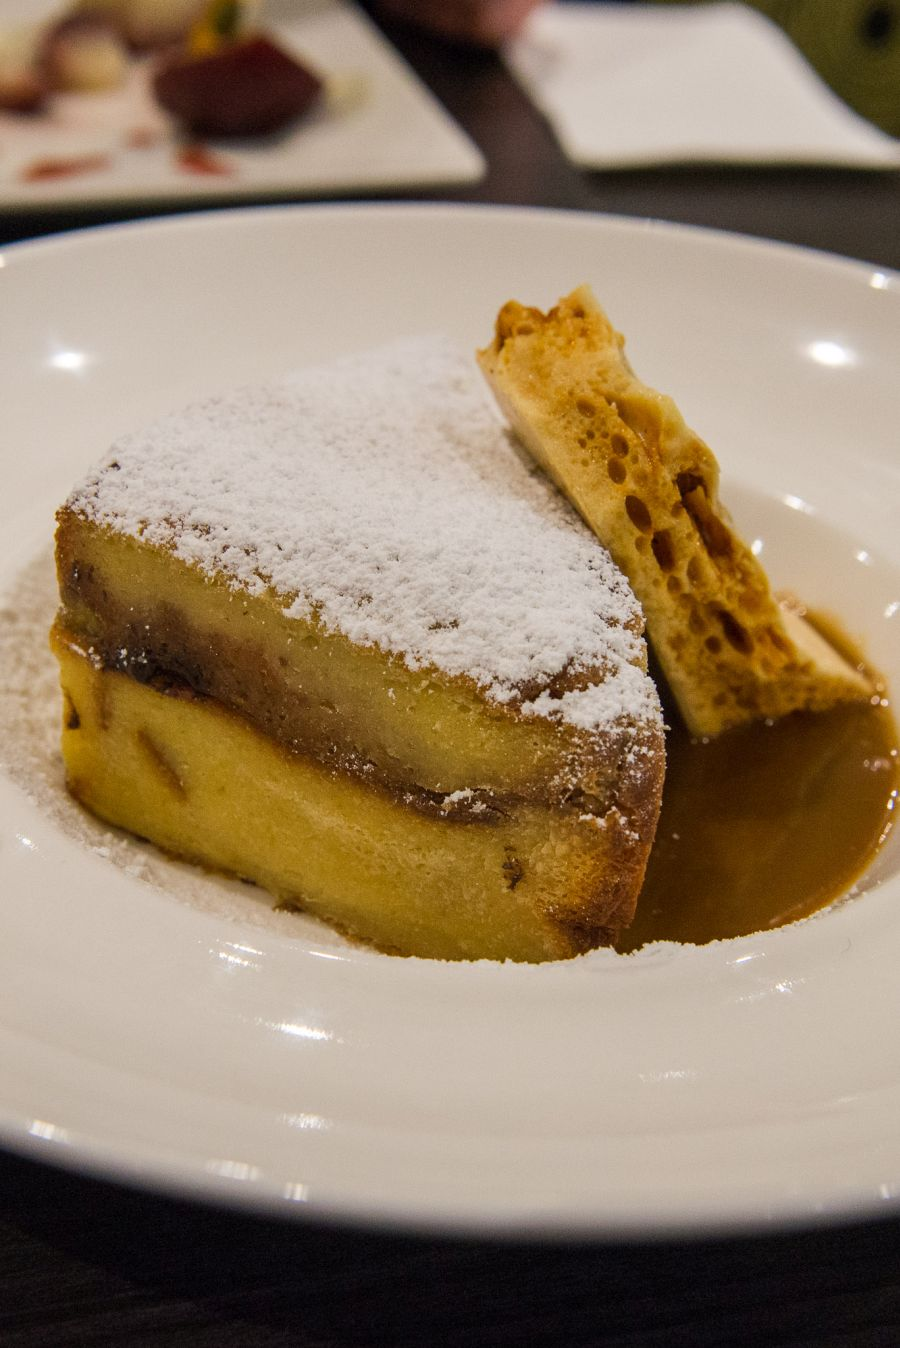 Brioche bread & butter pudding, butterscotch sauce, honeycomb, banana and rum (AU$14.50)